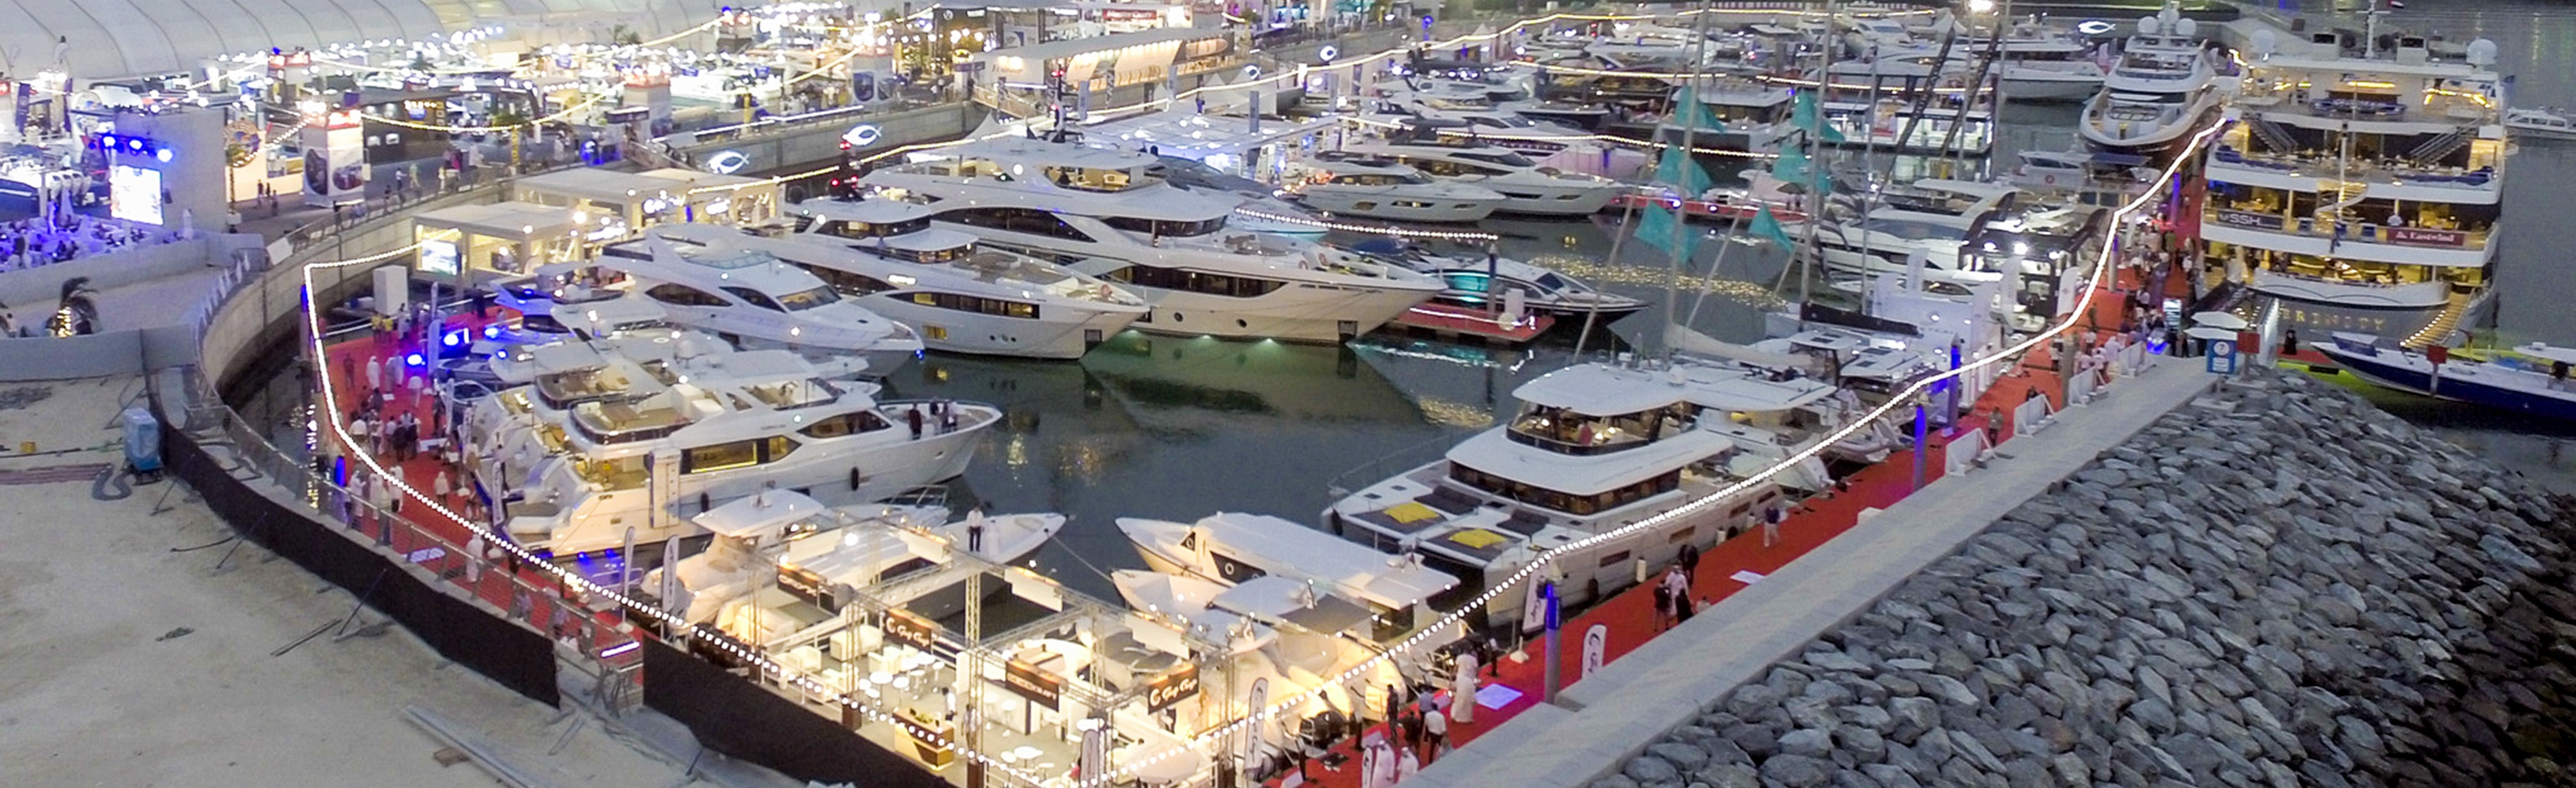 Gulf-Craft's-Yachts-and-Boats-at-the-Dubai-International-Boat-Show-2018-(3)